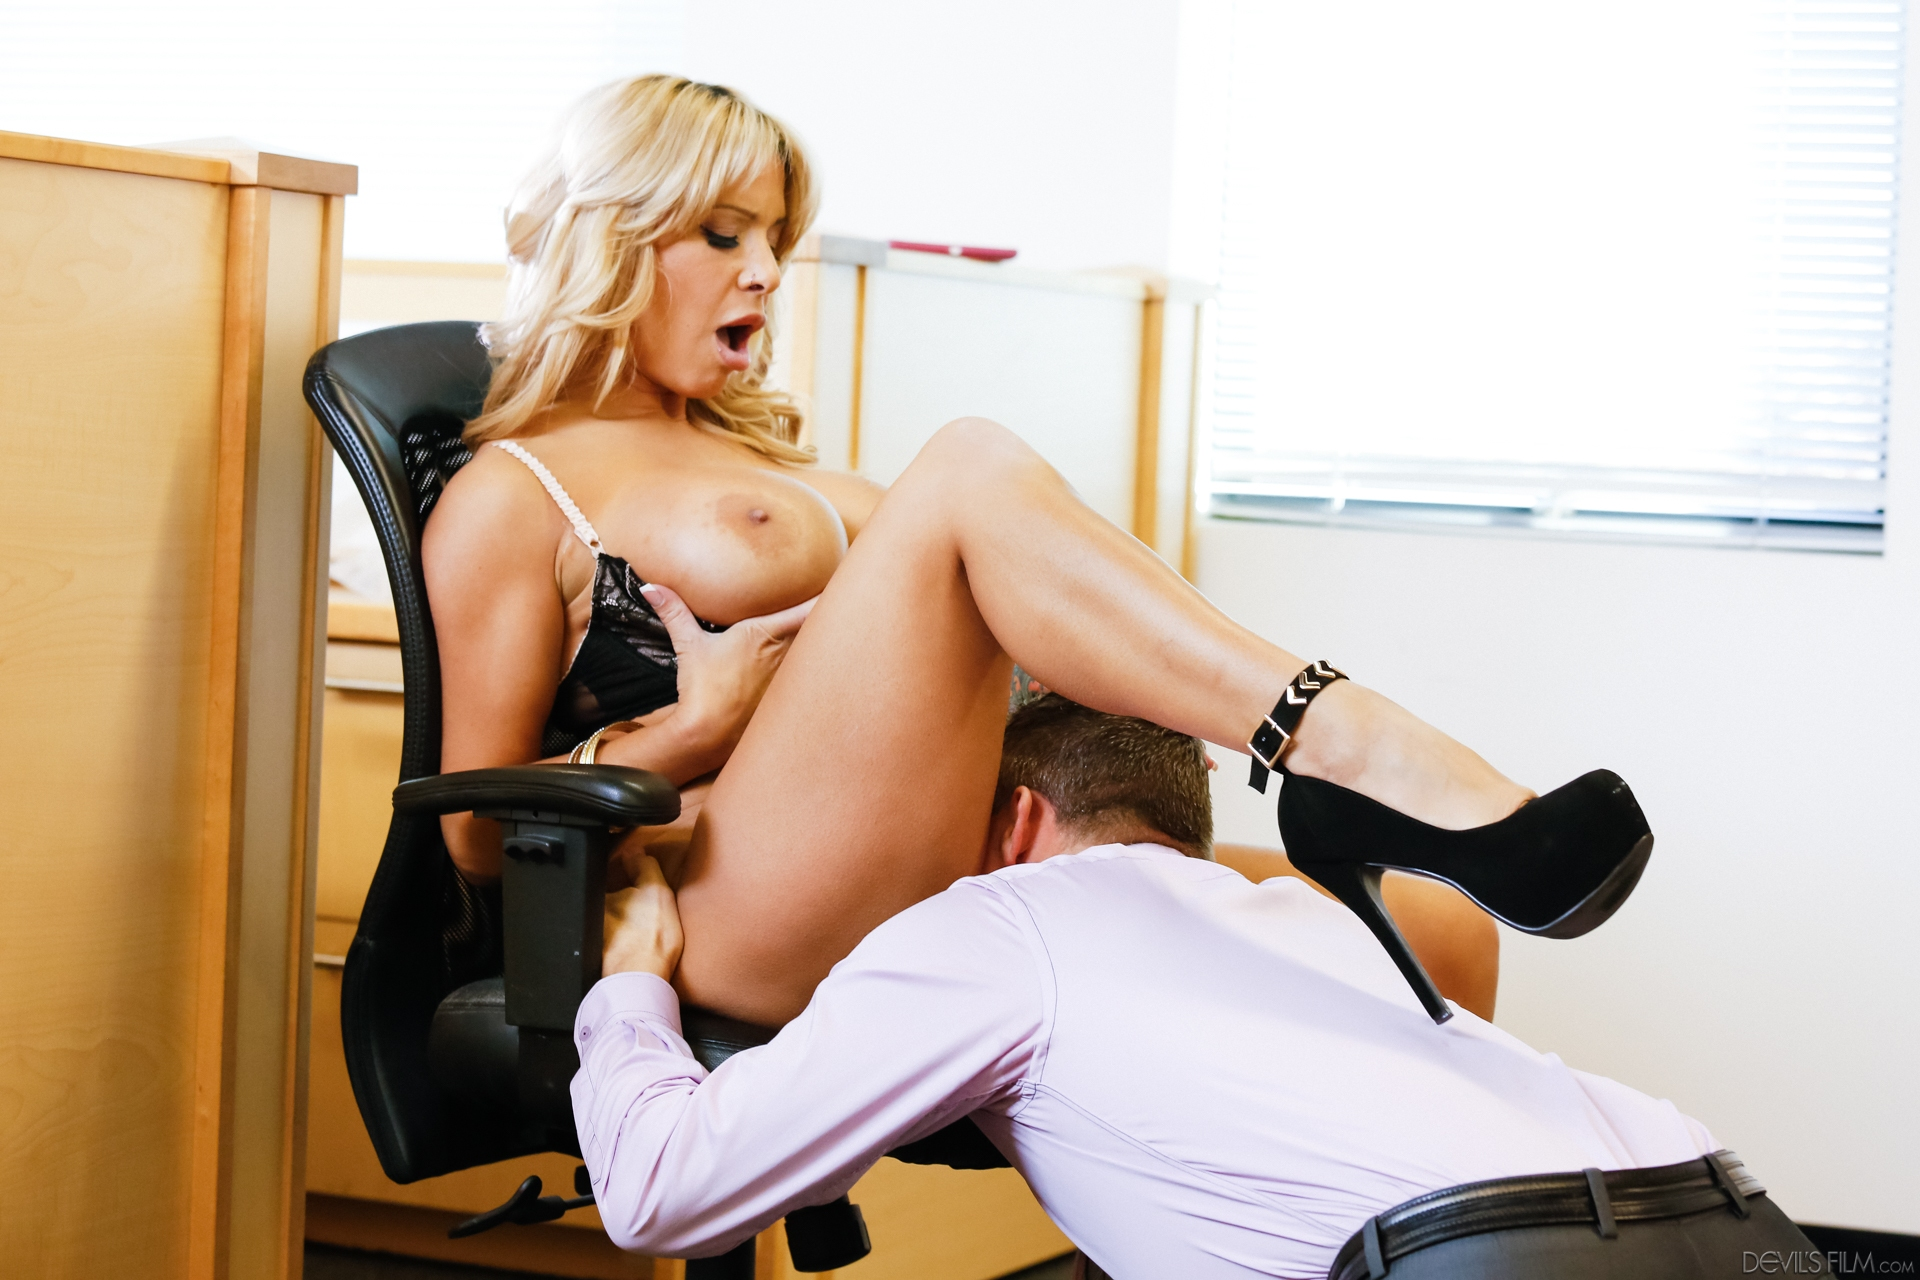 busty ole secretary milf going down on an executive #13